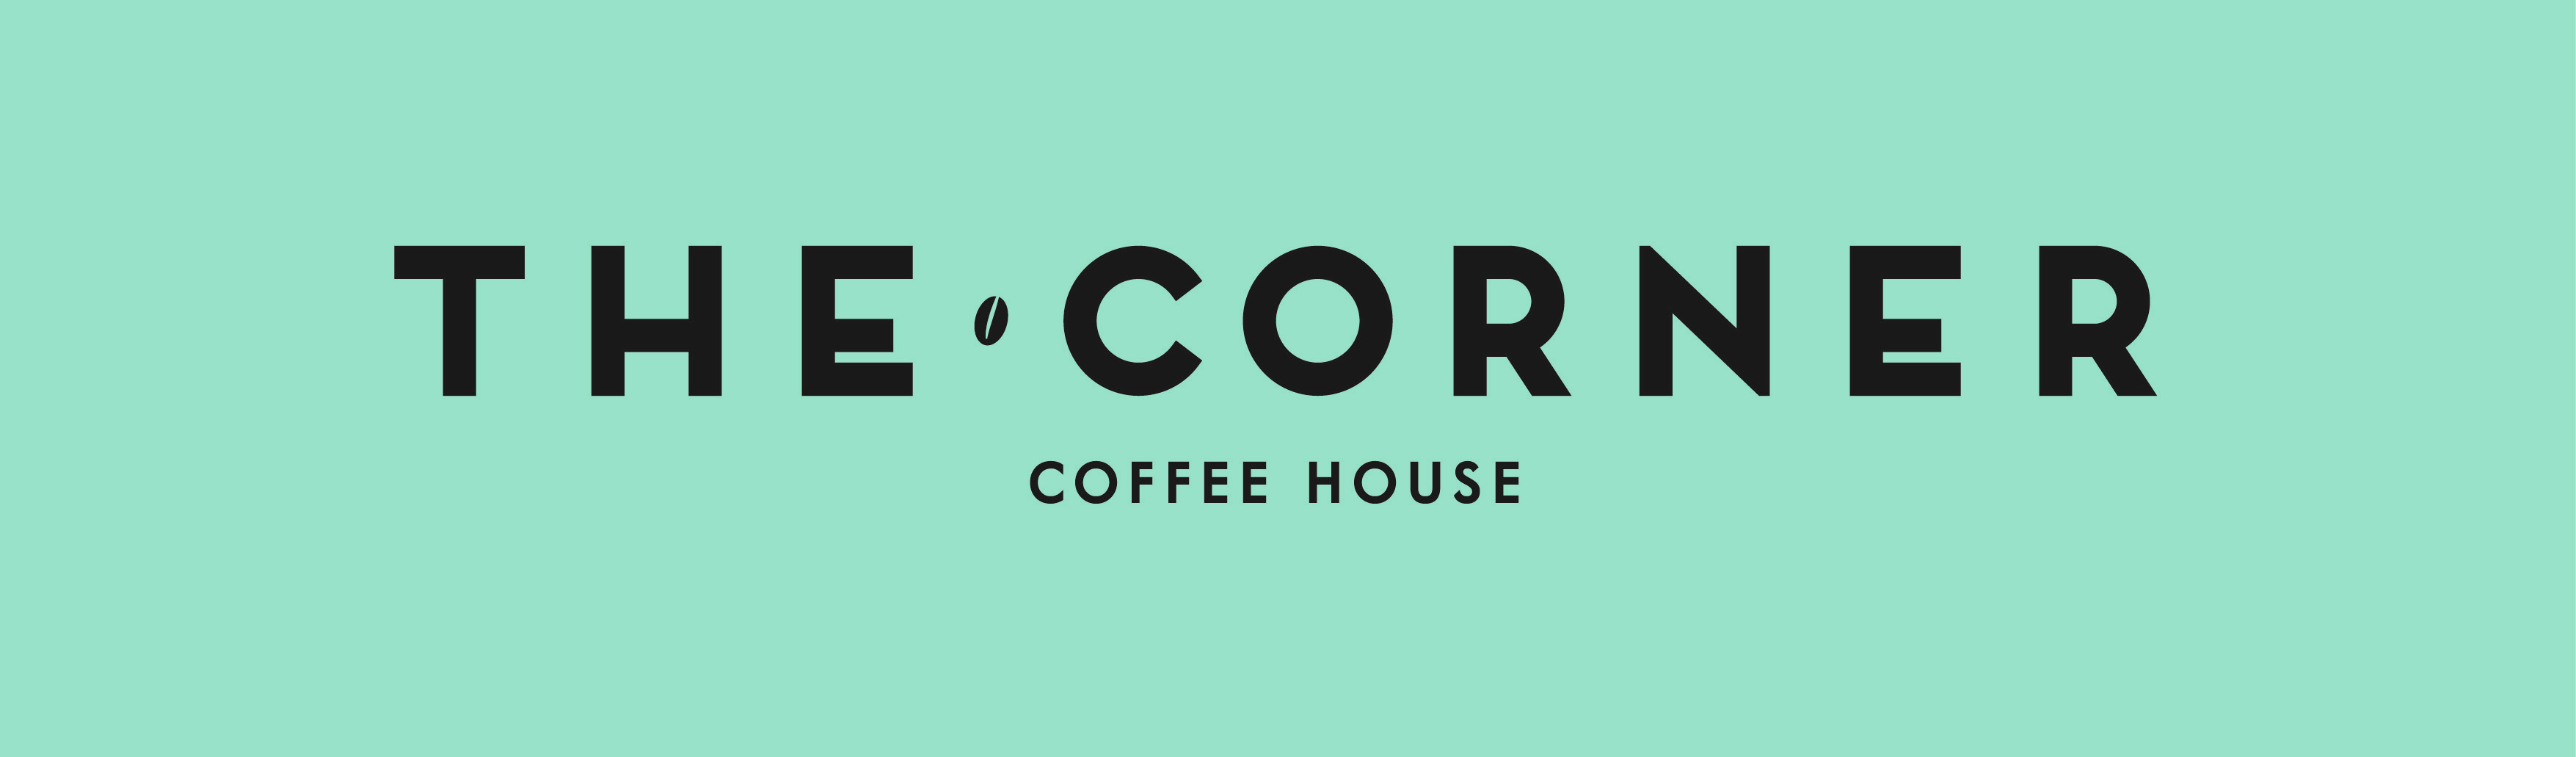 The Corner Coffee House Logo